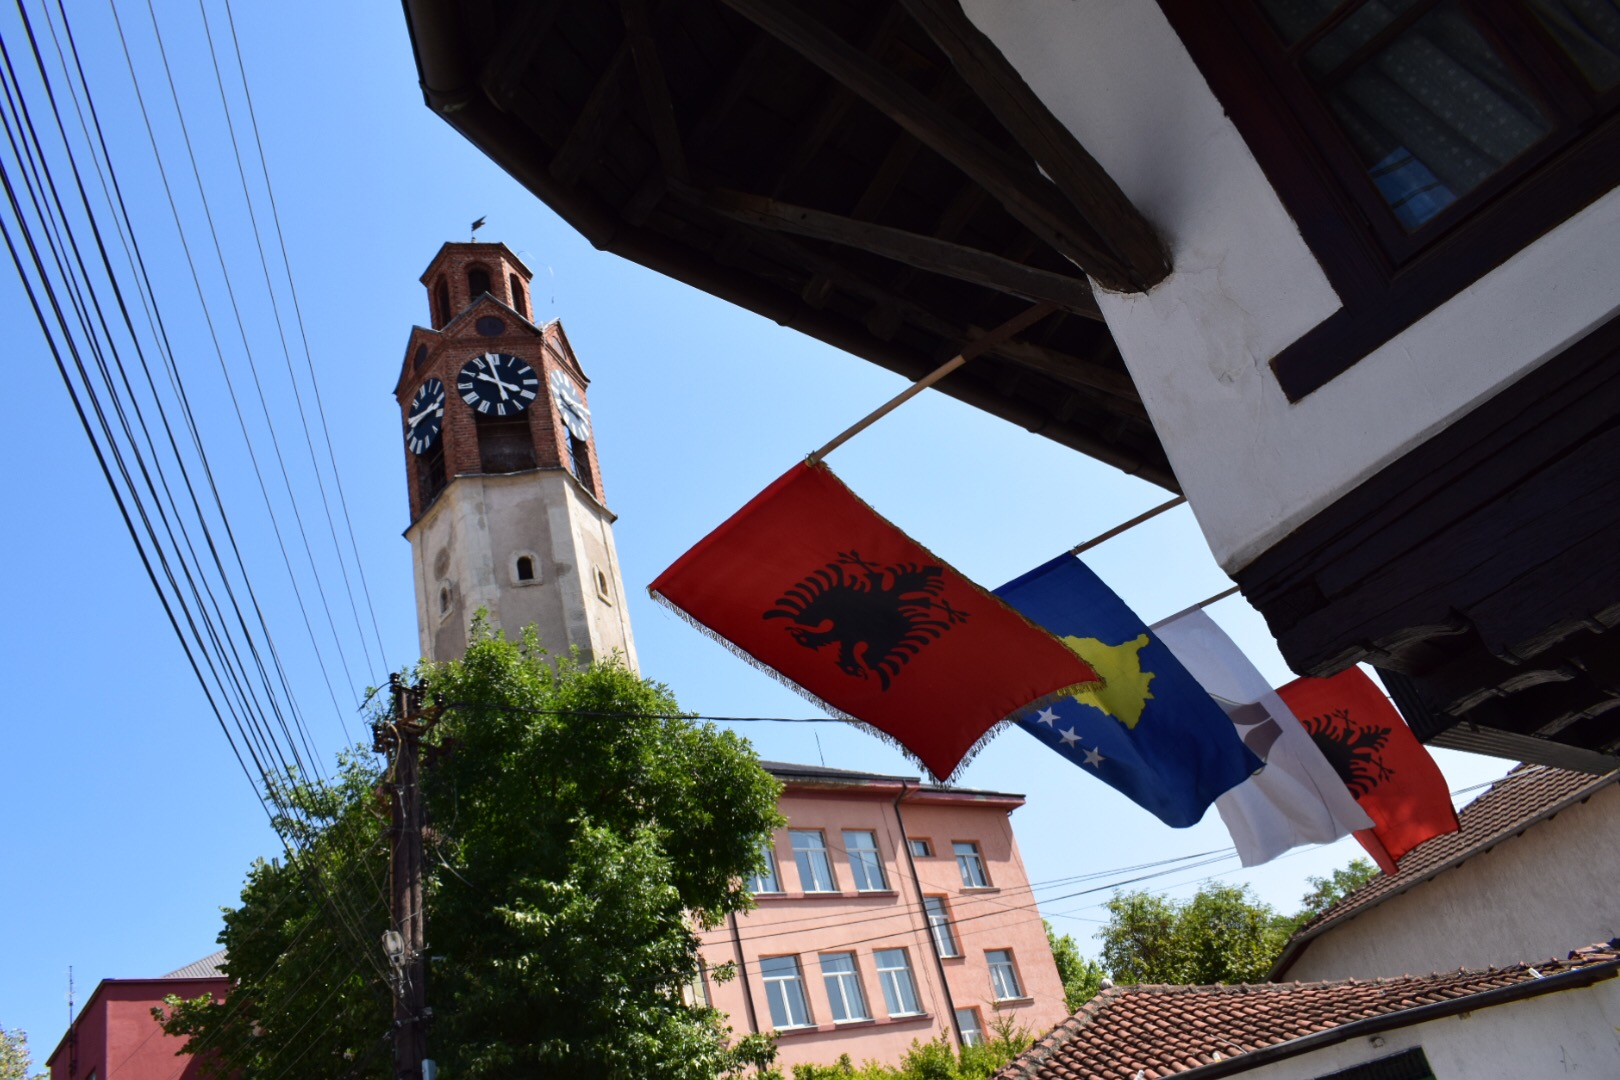 Kosovo have celebrated 10 years of independence this year.